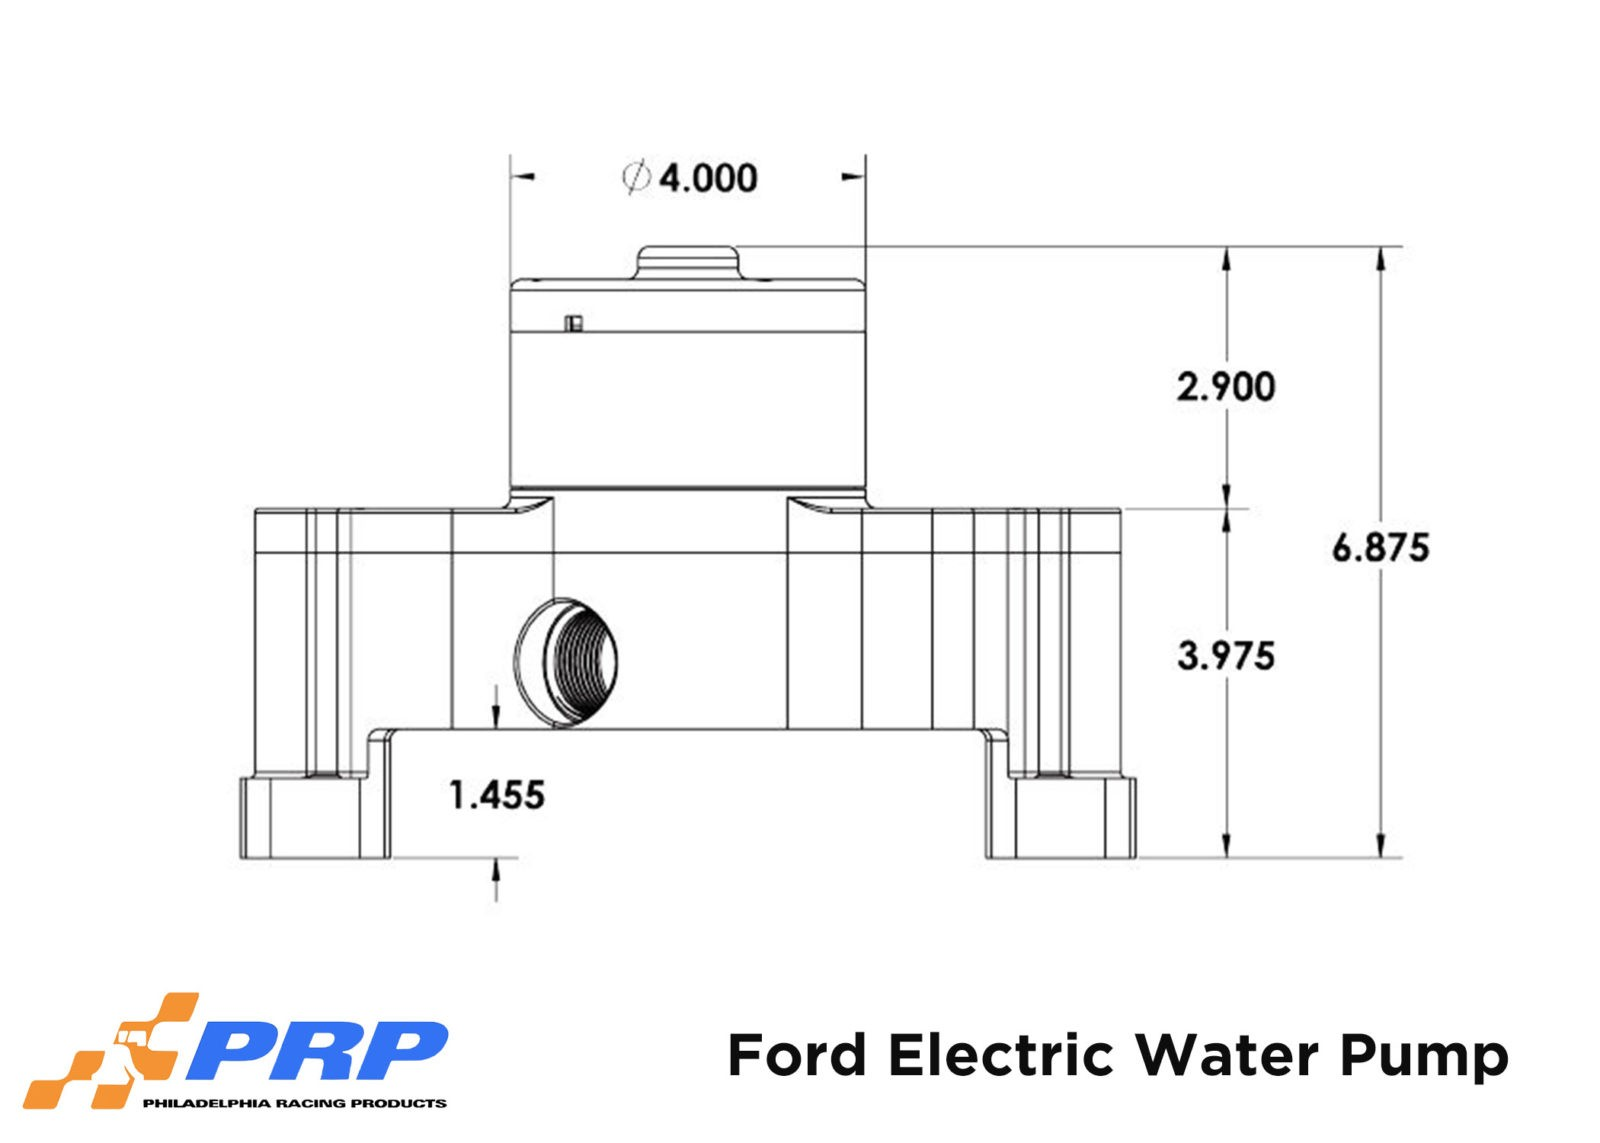 Ford Electric Water Pump schematics graphic maybe by PRP Racing Products